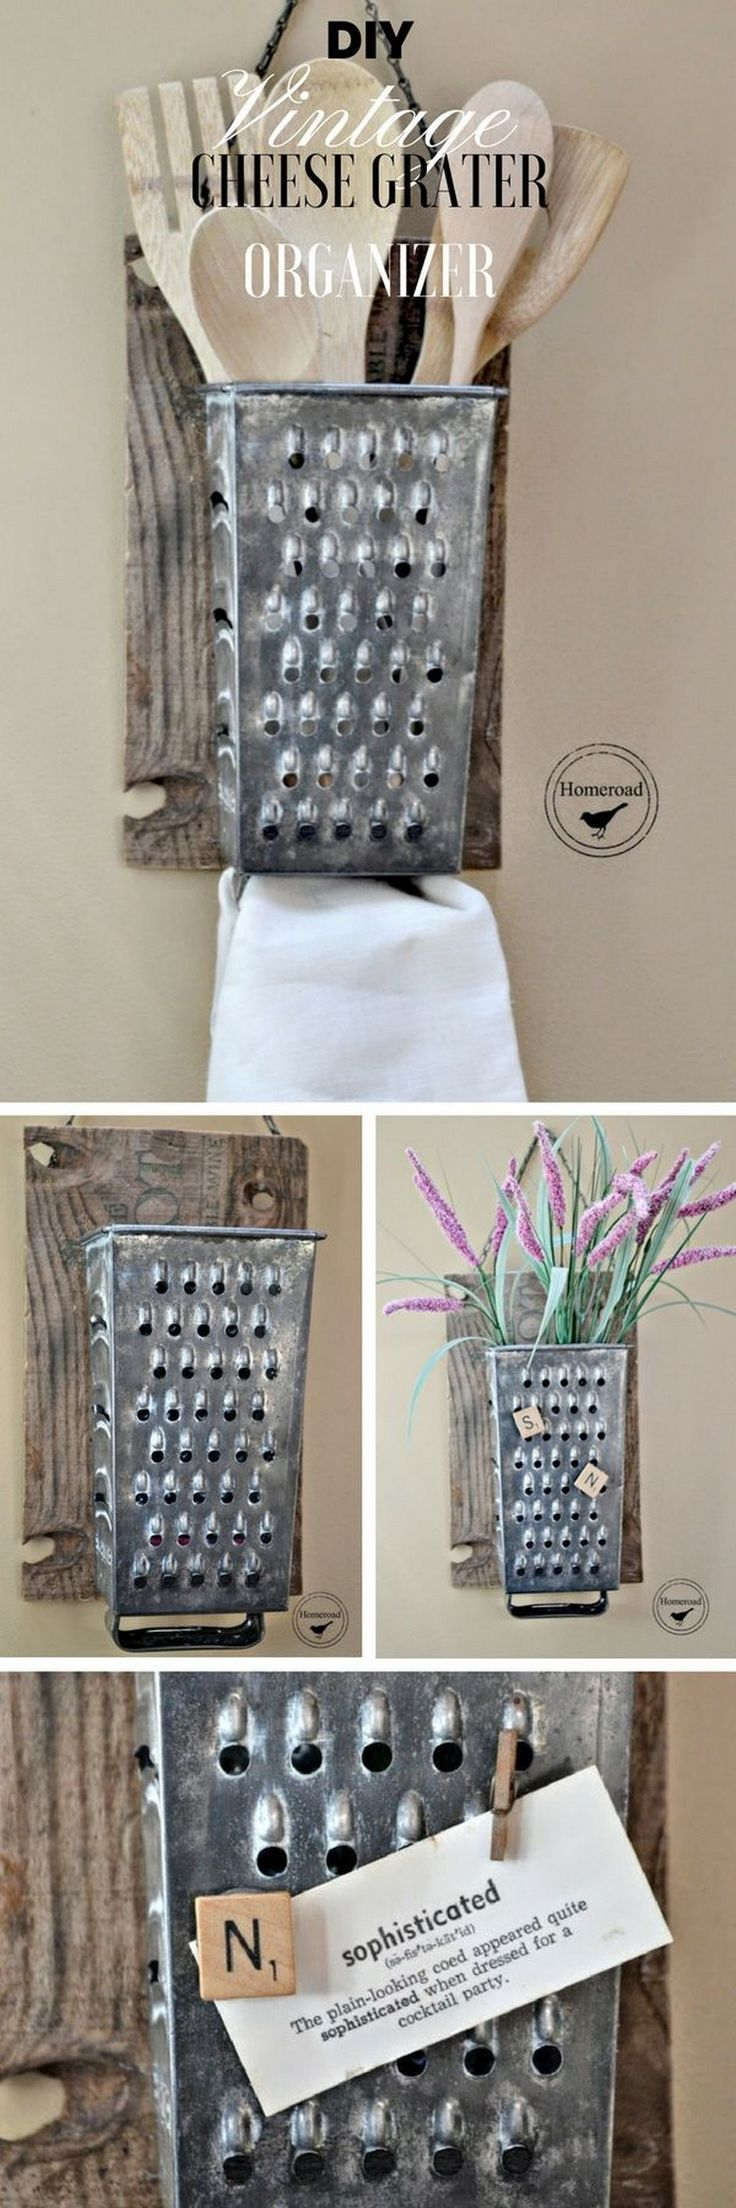 Best 25 rustic home decorating ideas on pinterest barnwood ideas painted mason jars and - Kitchen diy ideas ...